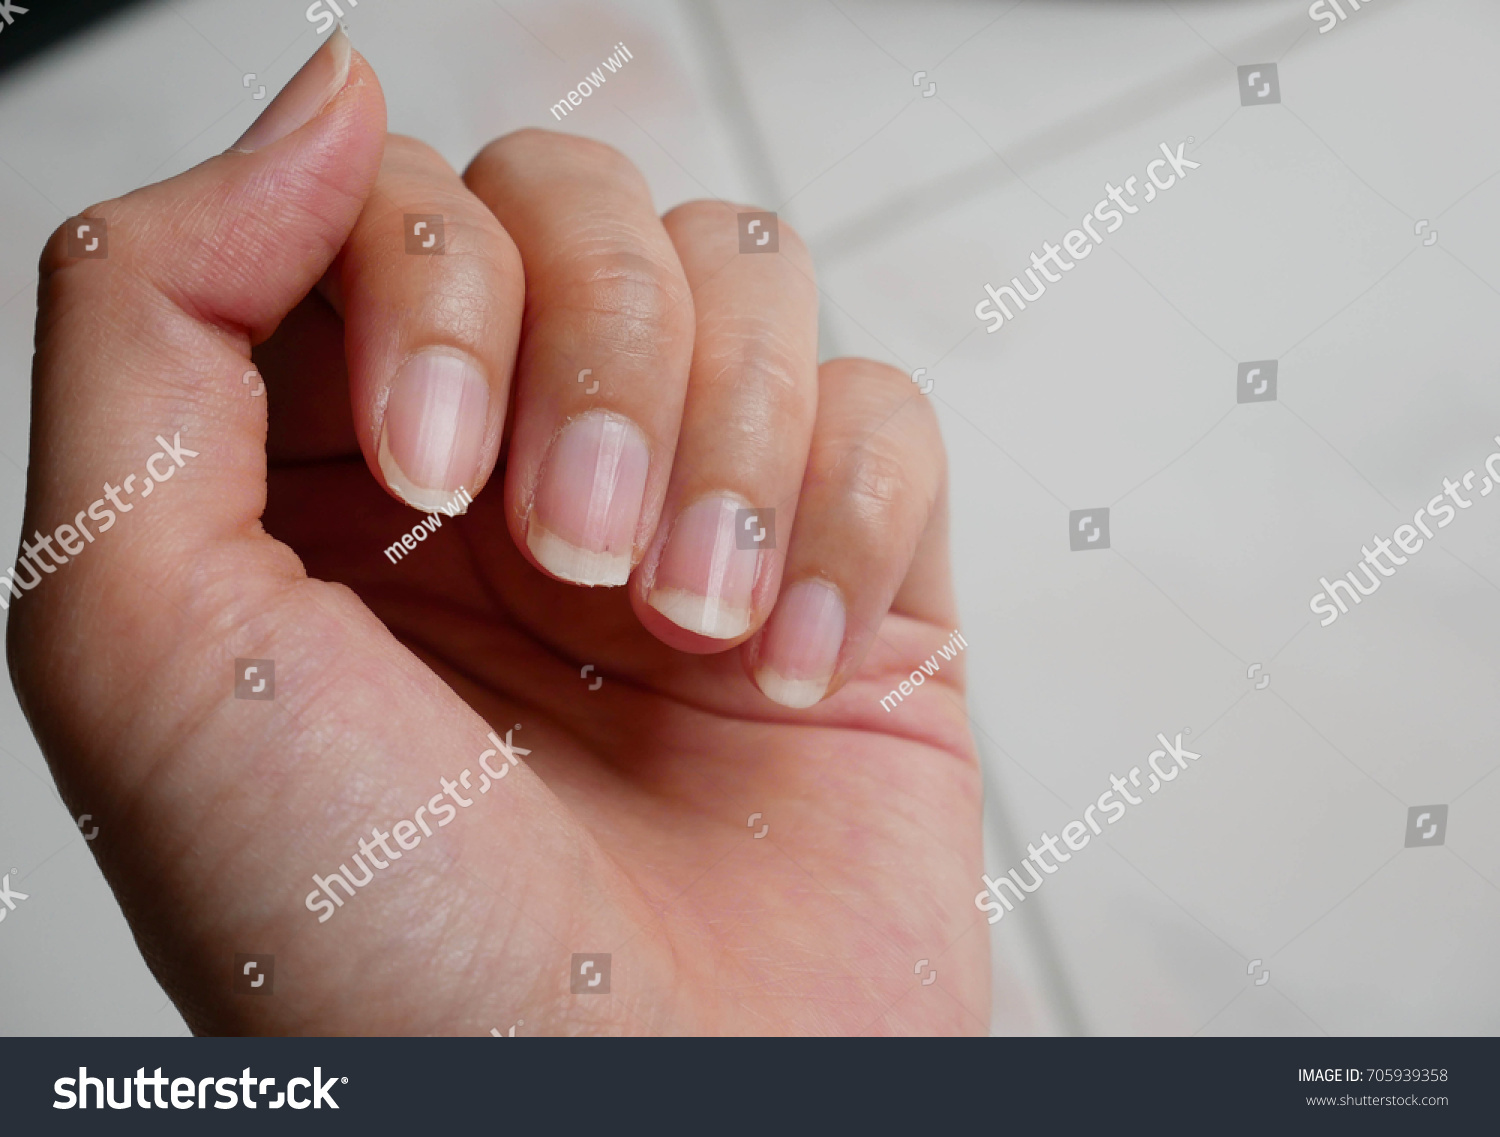 Fingernail Lack Nutrients On White Background Stock Photo (Download ...